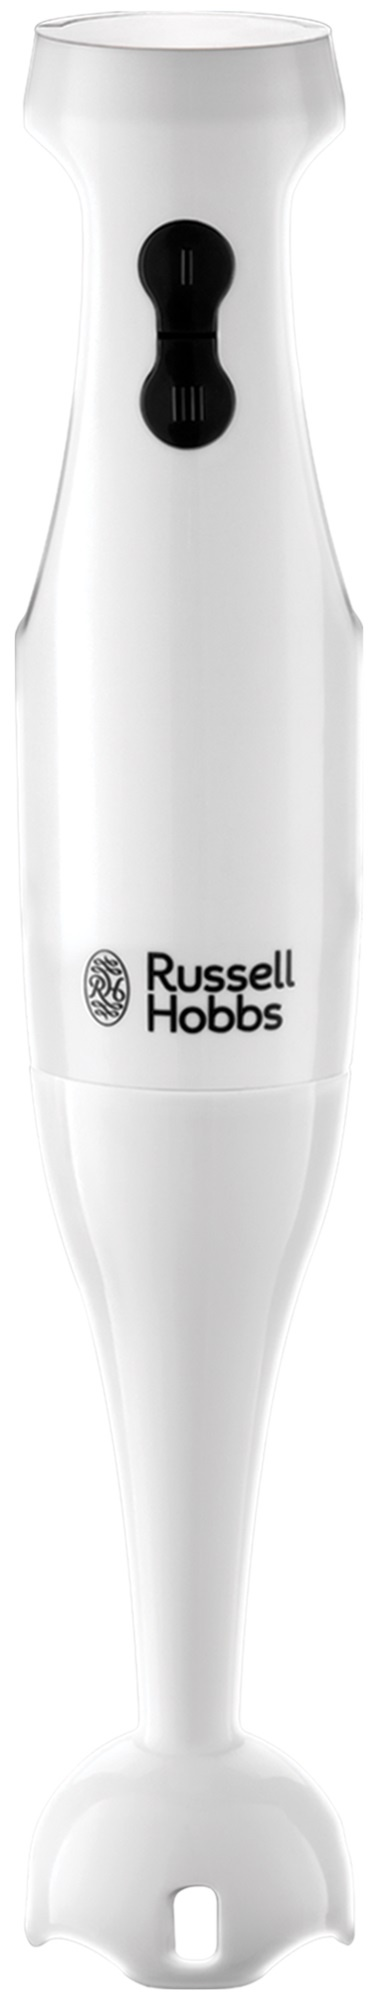 Блендер Russell Hobbs Food Collection 24601-56 блендер погружной russell hobbs explore 200w